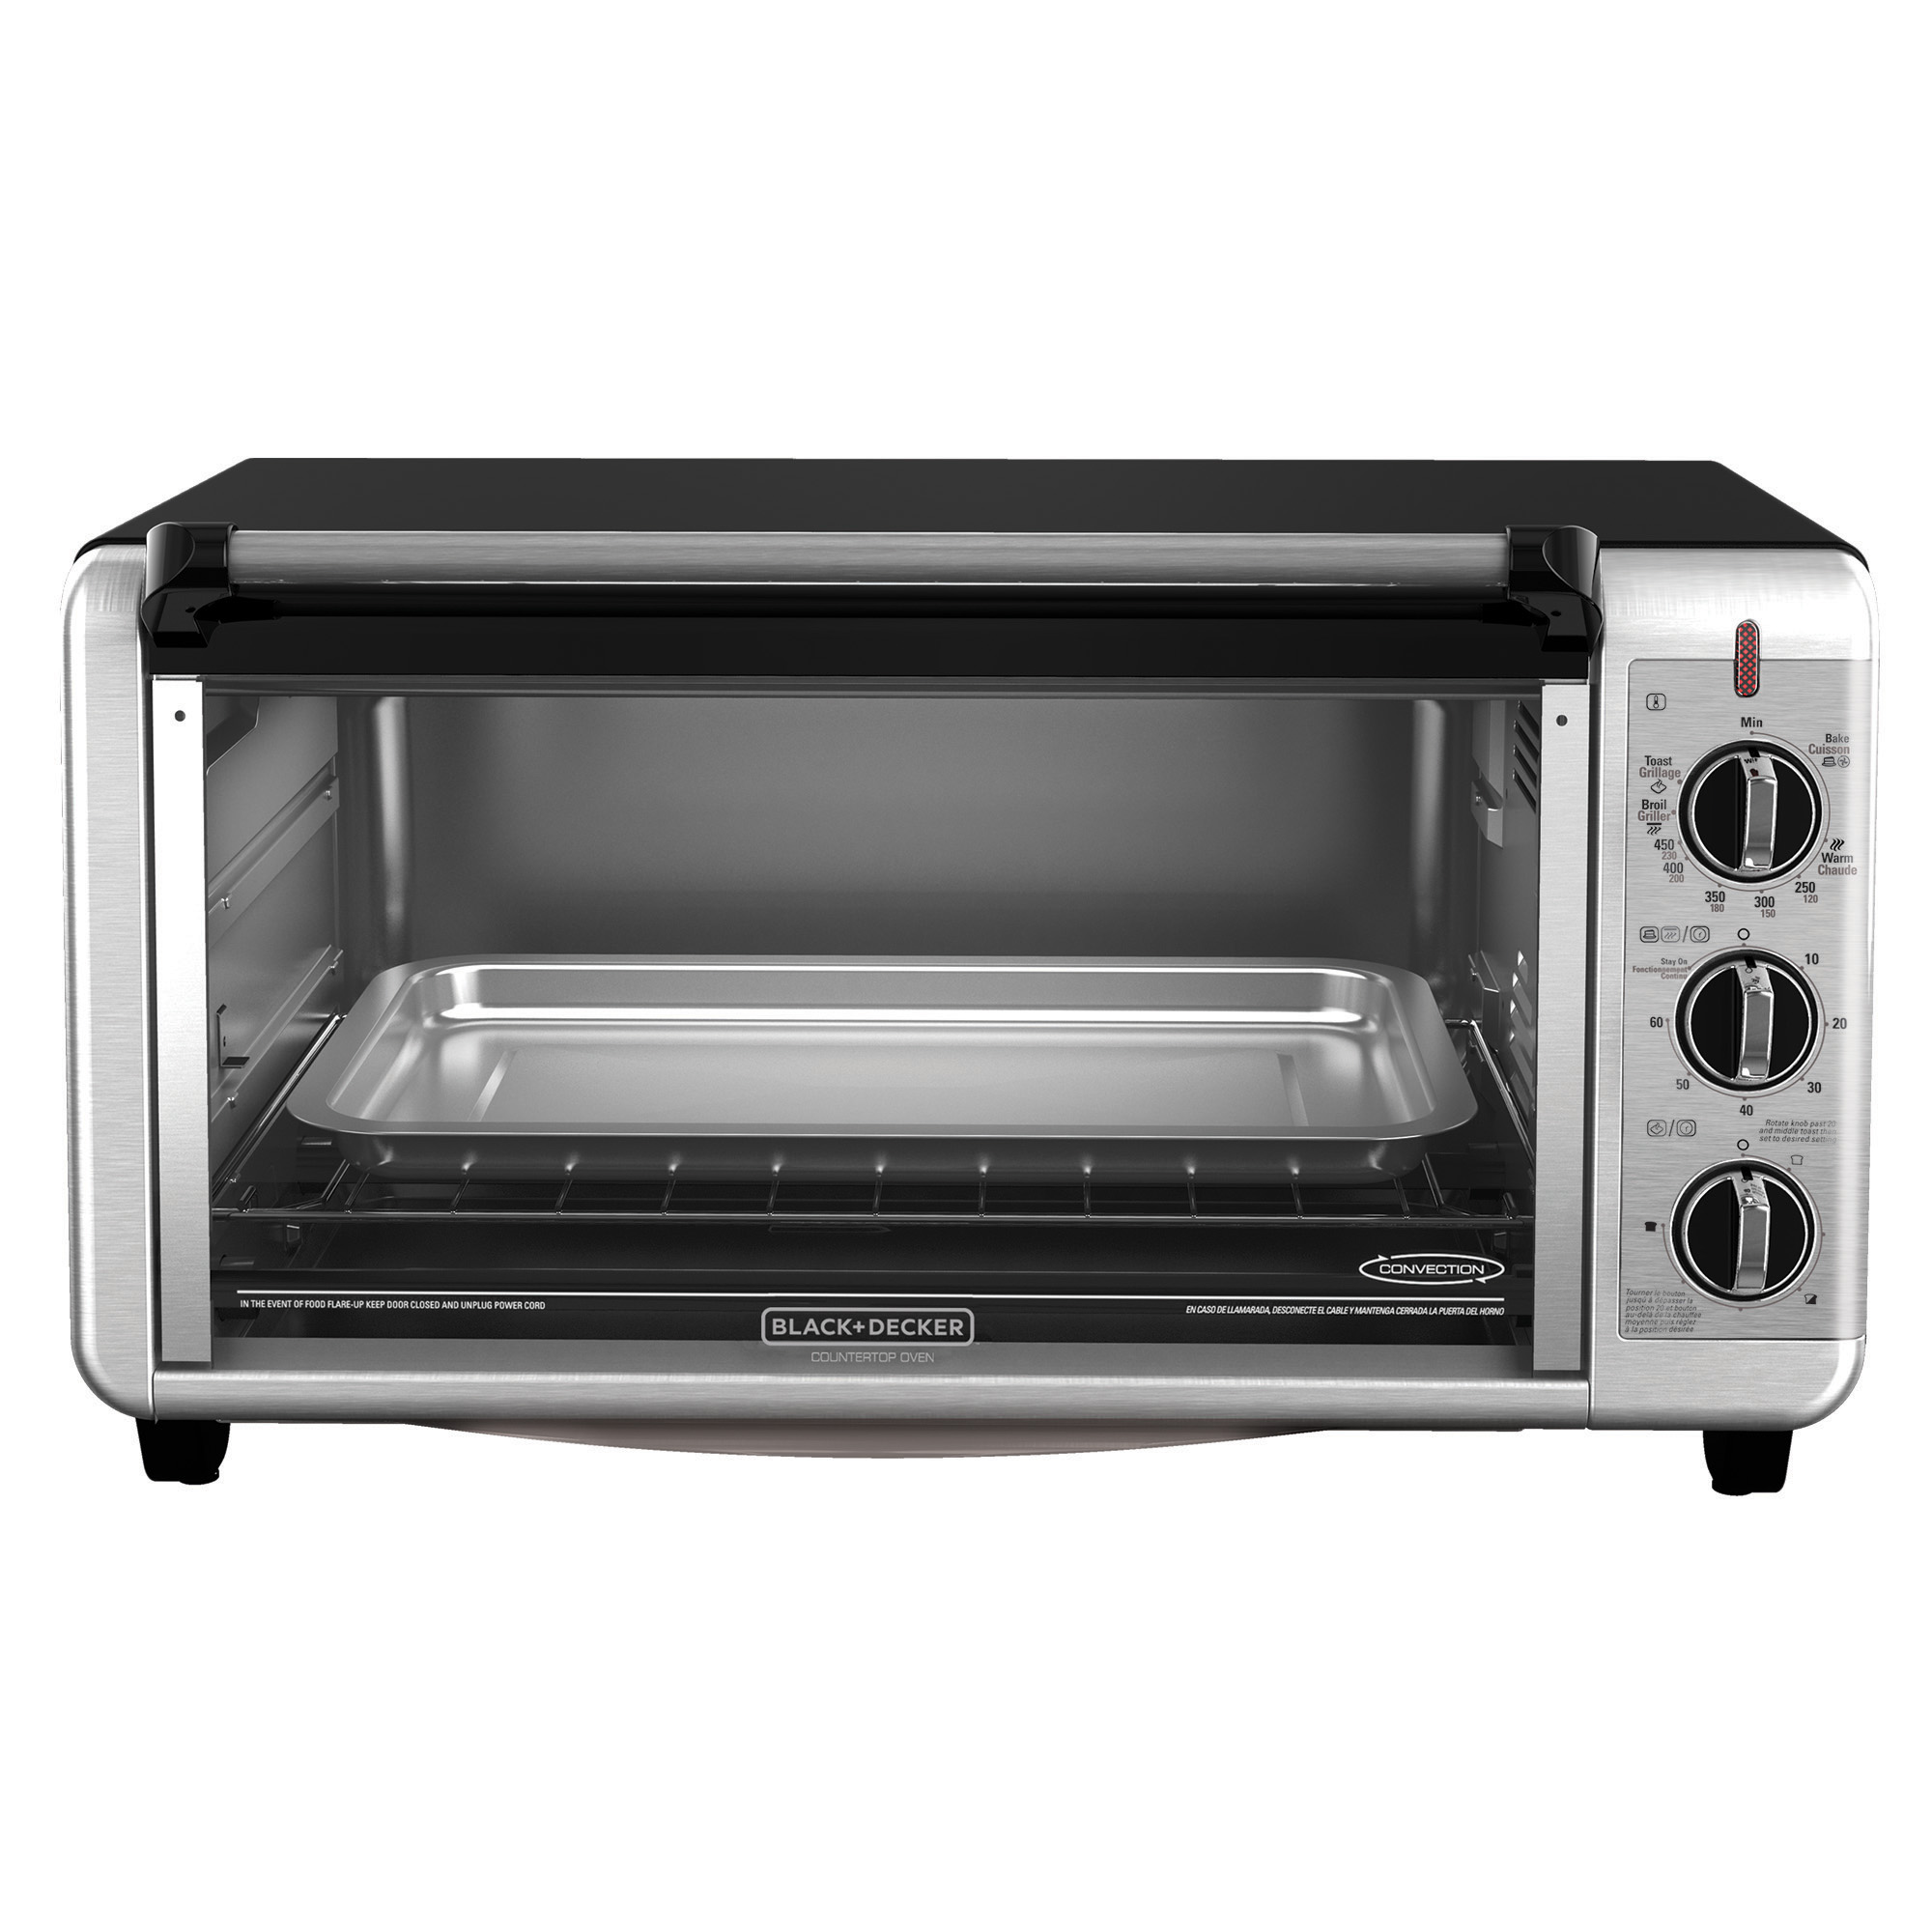 TO3260XSBDprd4_HR.ashx?h=412&la=en&mh=412&mw=430&w=412 convection and toaster ovens cooking appliances black decker black and decker toaster oven wiring diagram at panicattacktreatment.co